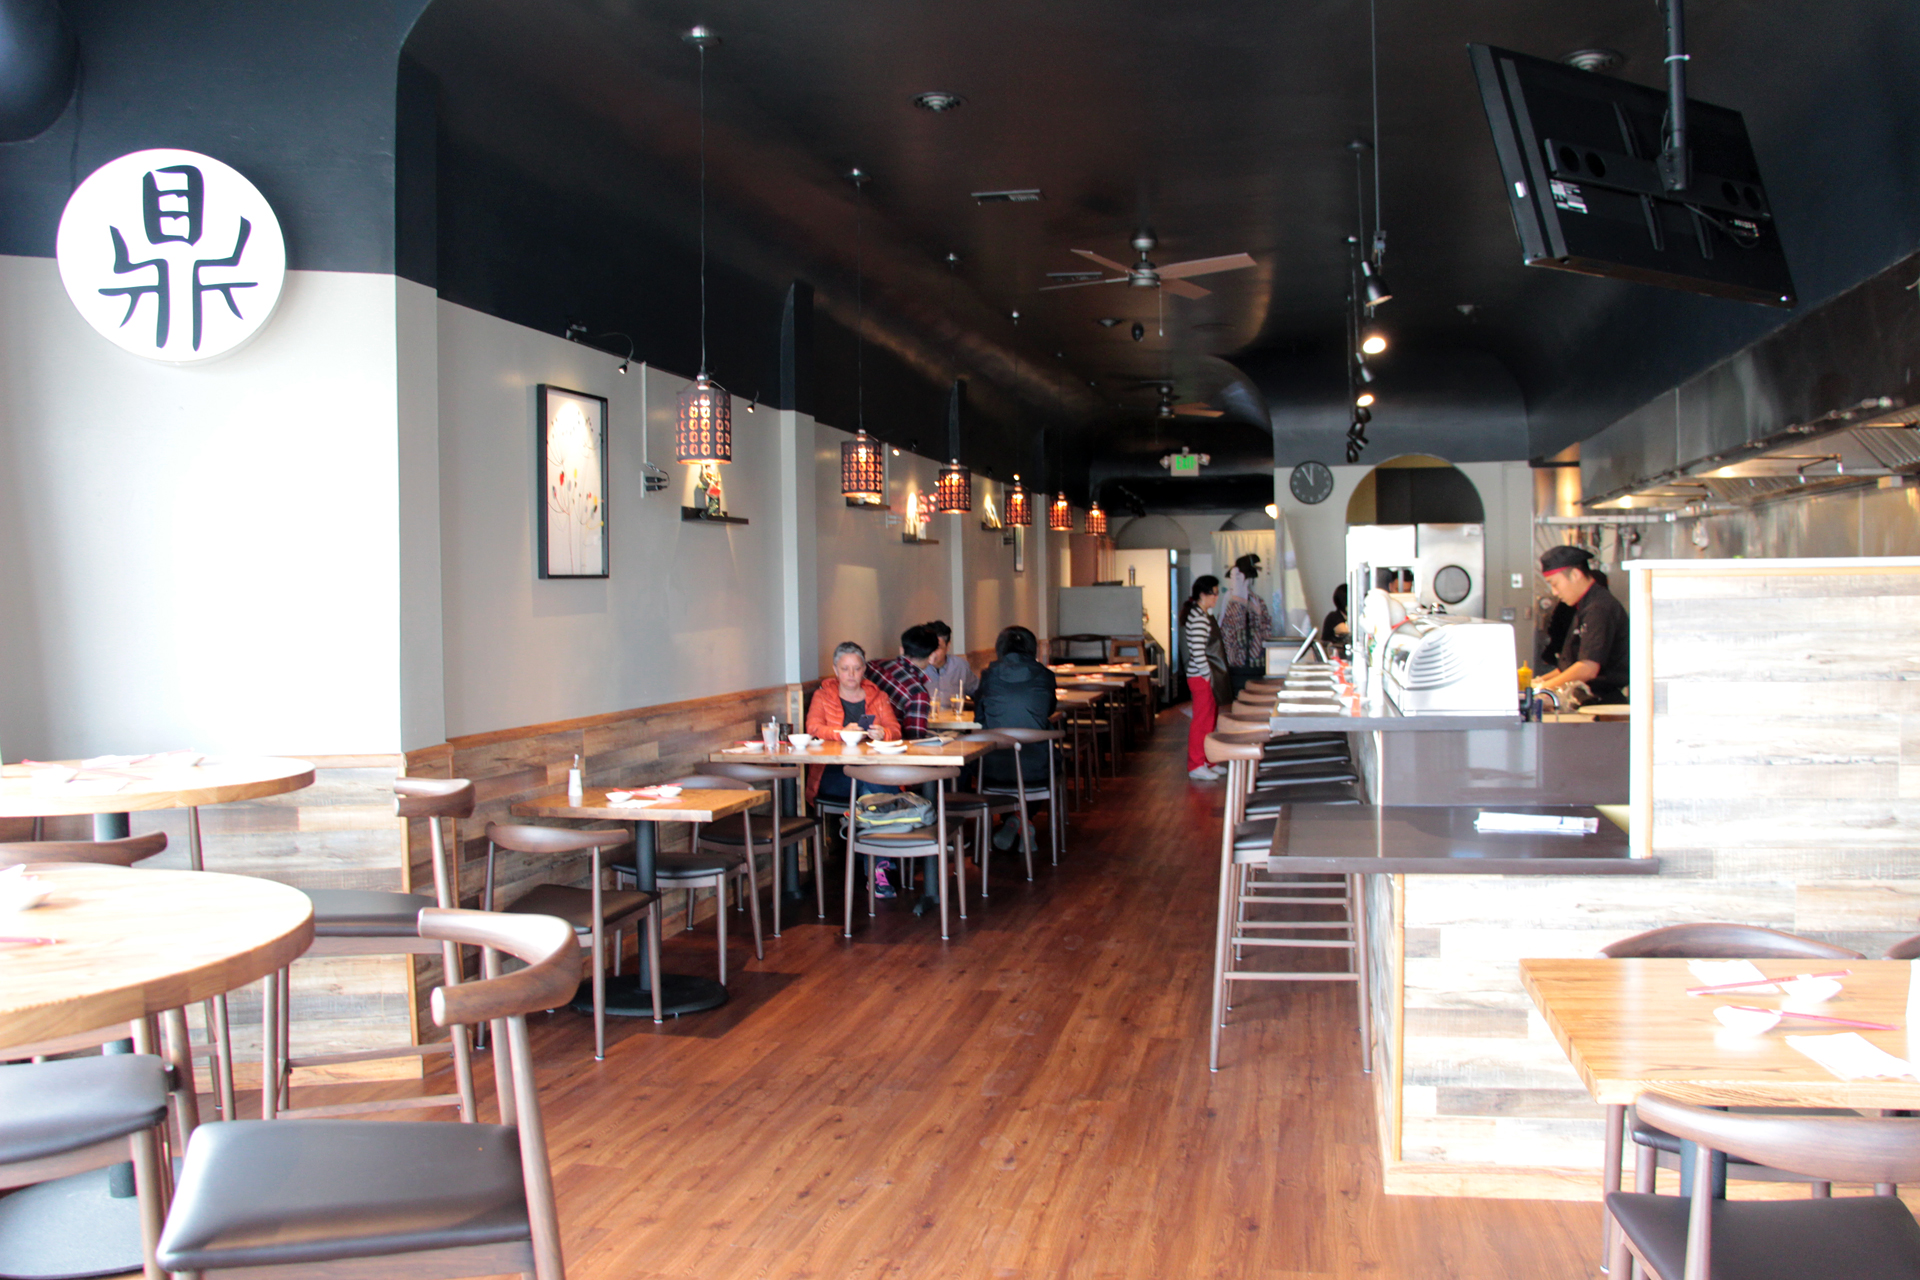 Ding japanese cuisine opens in rockridge for lunch and